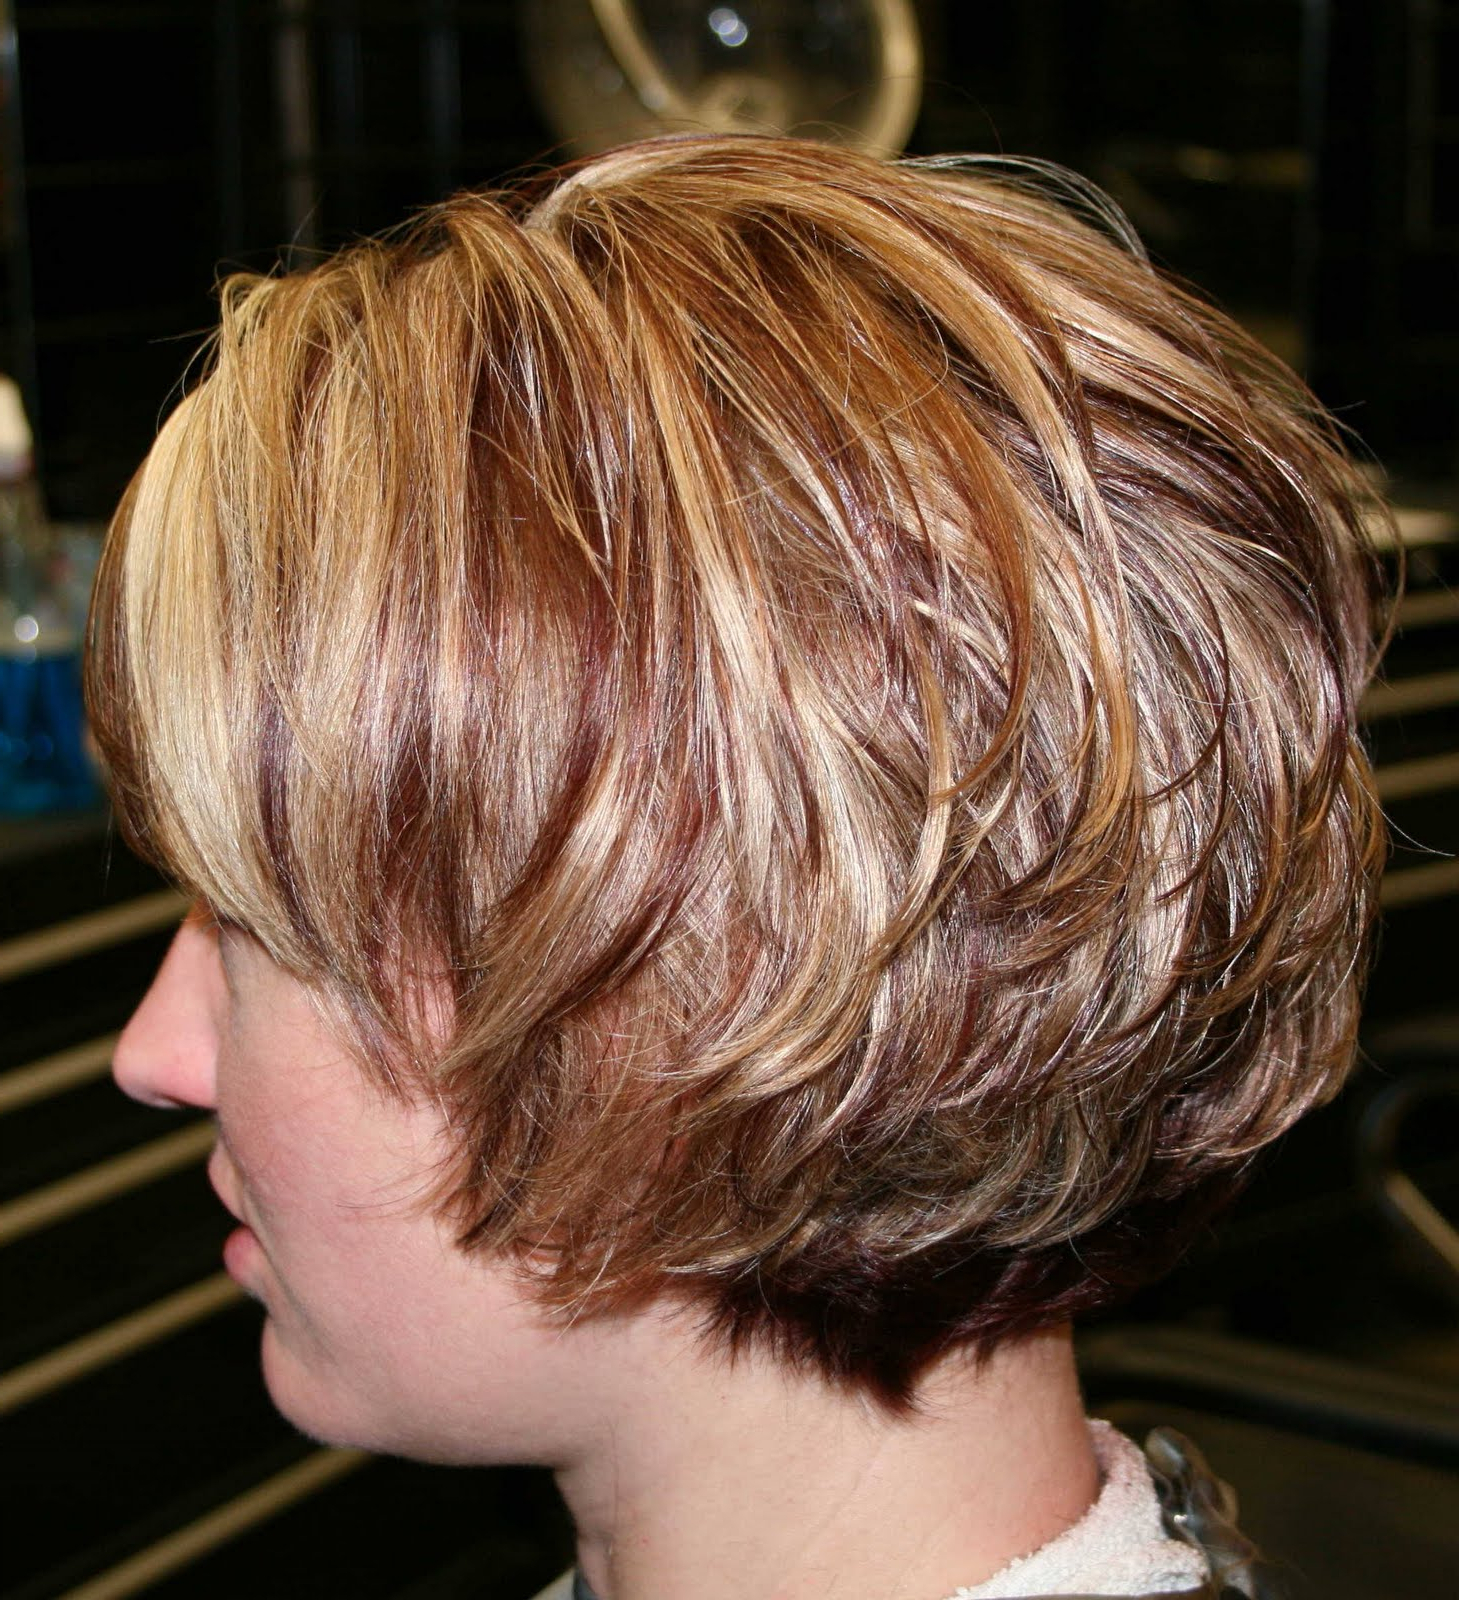 Hairstyles Collection: Short Stacked Hairstyles Within Sassy And Stacked Hairstyles (View 13 of 20)